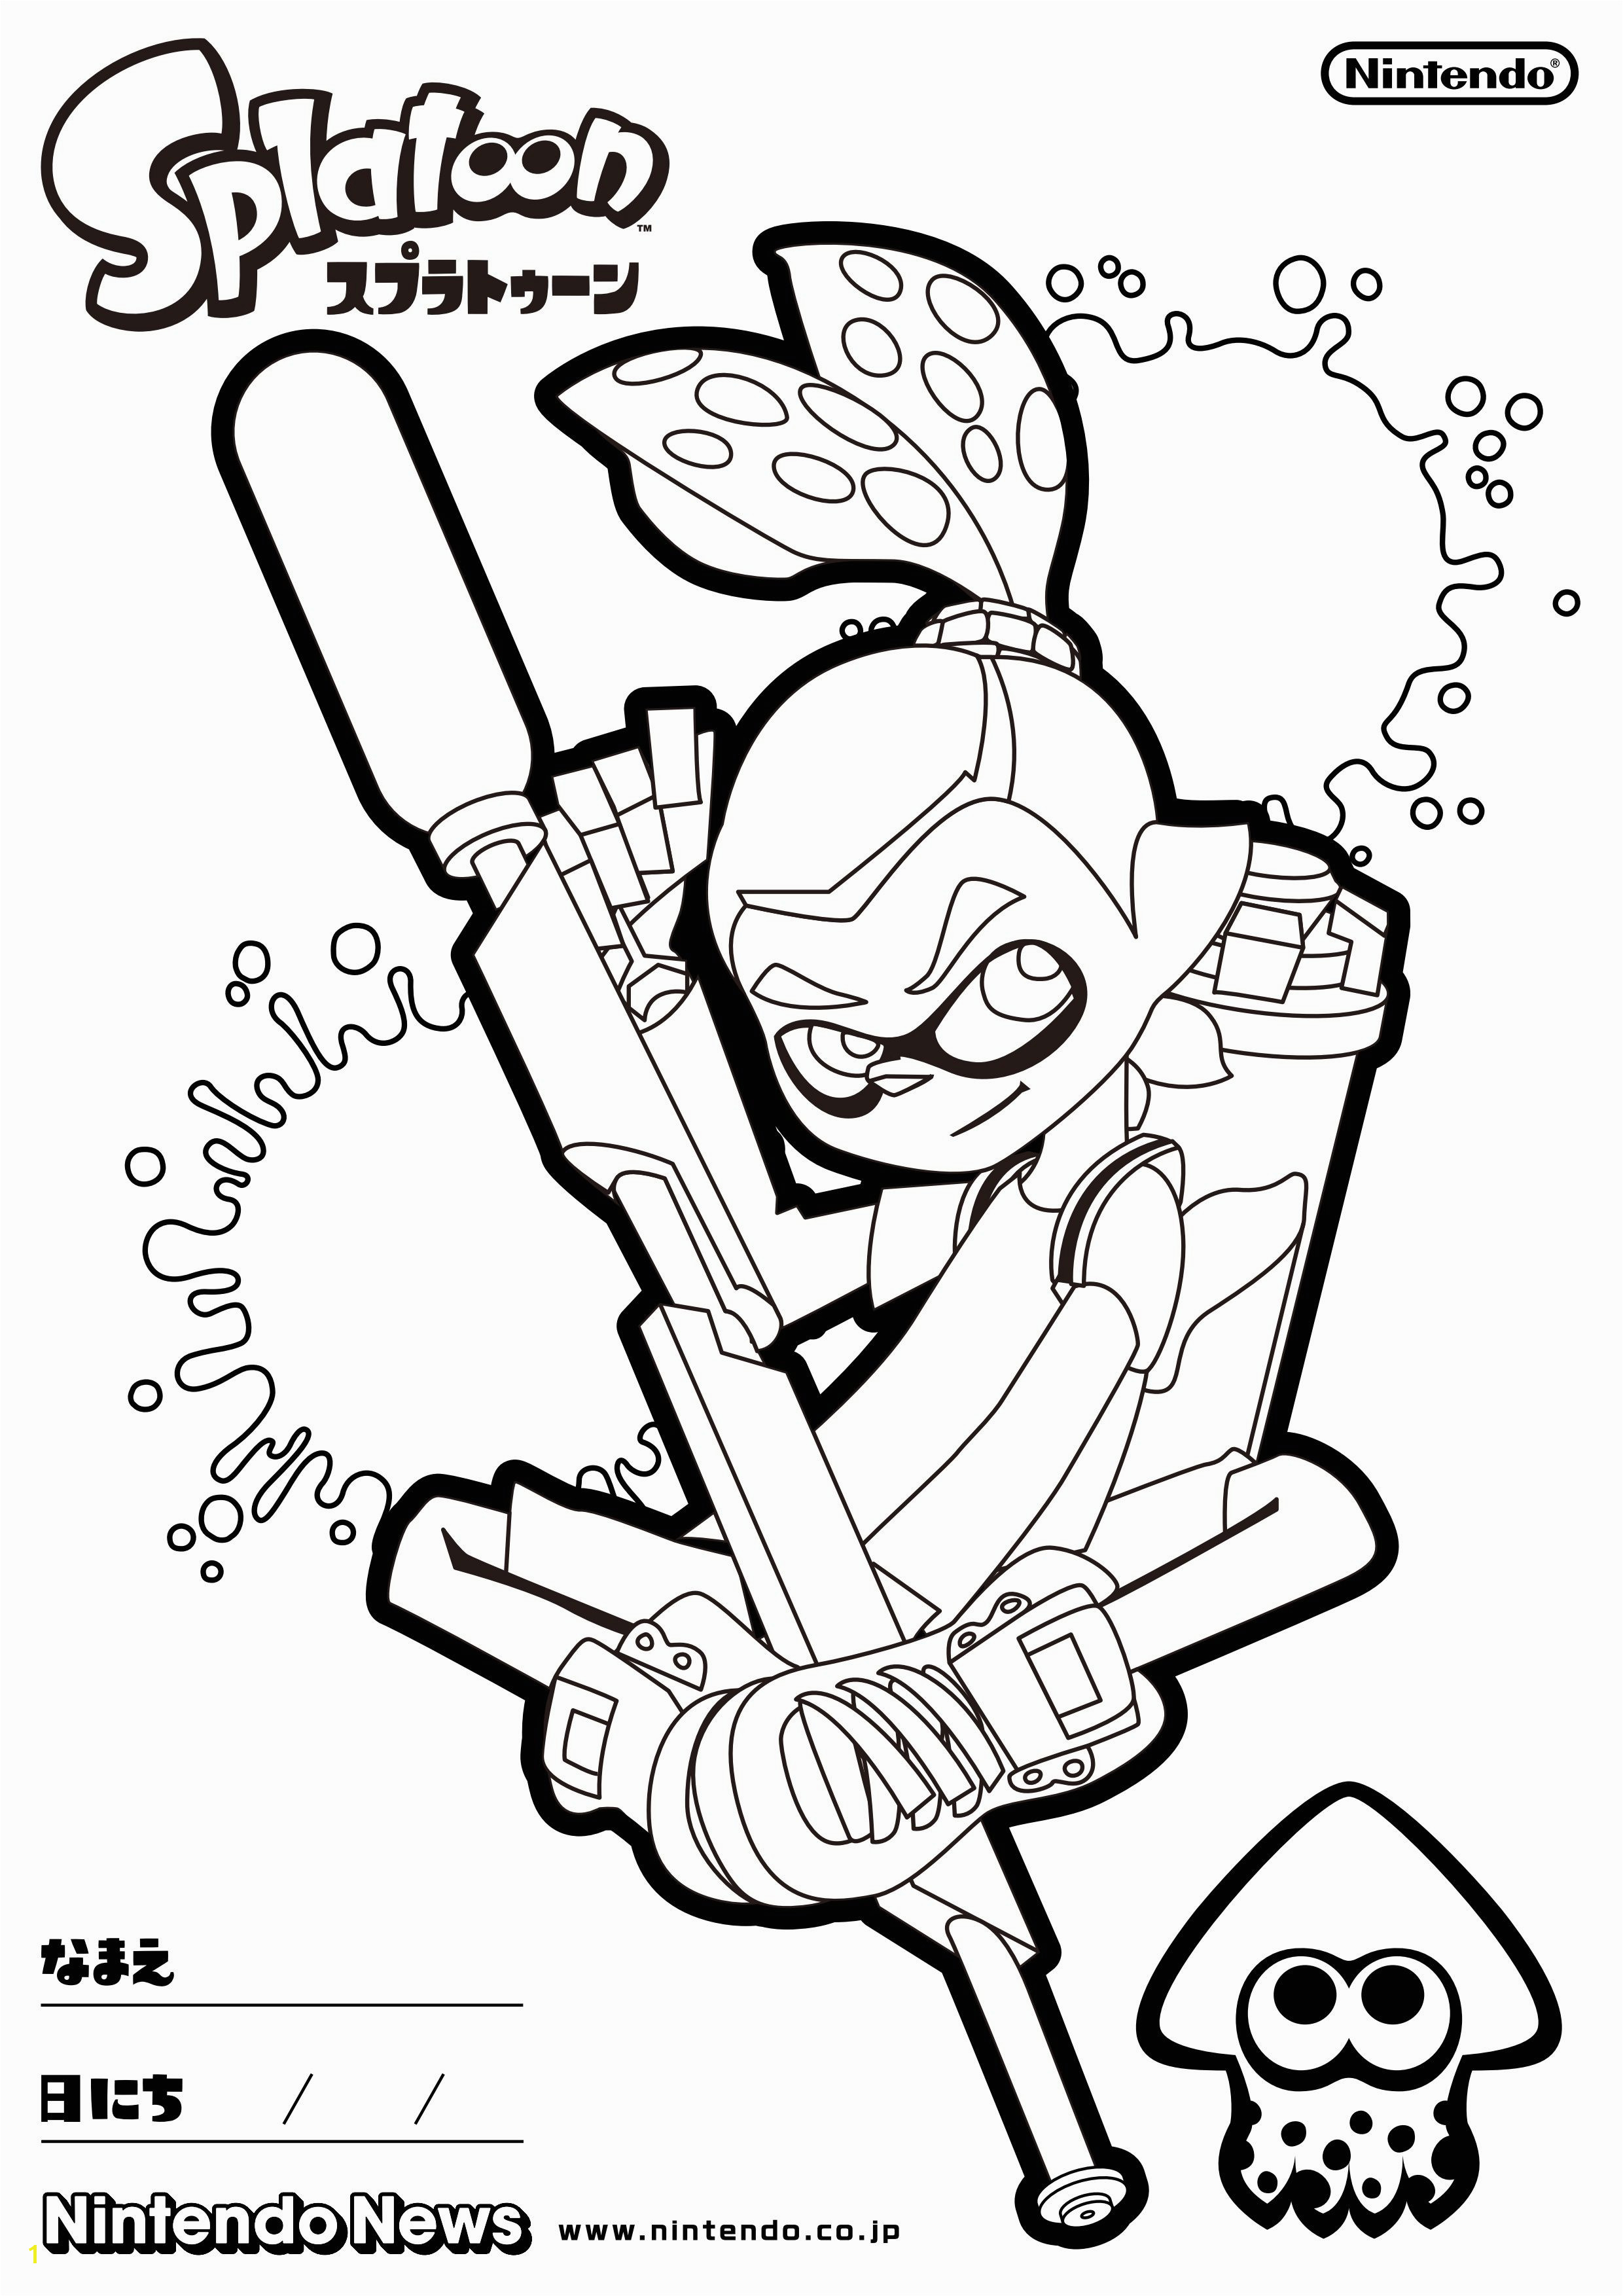 Free Coloring Pages Splatoon Sketch Coloring Page Free Coloring Pages Coloring Pages For Boys